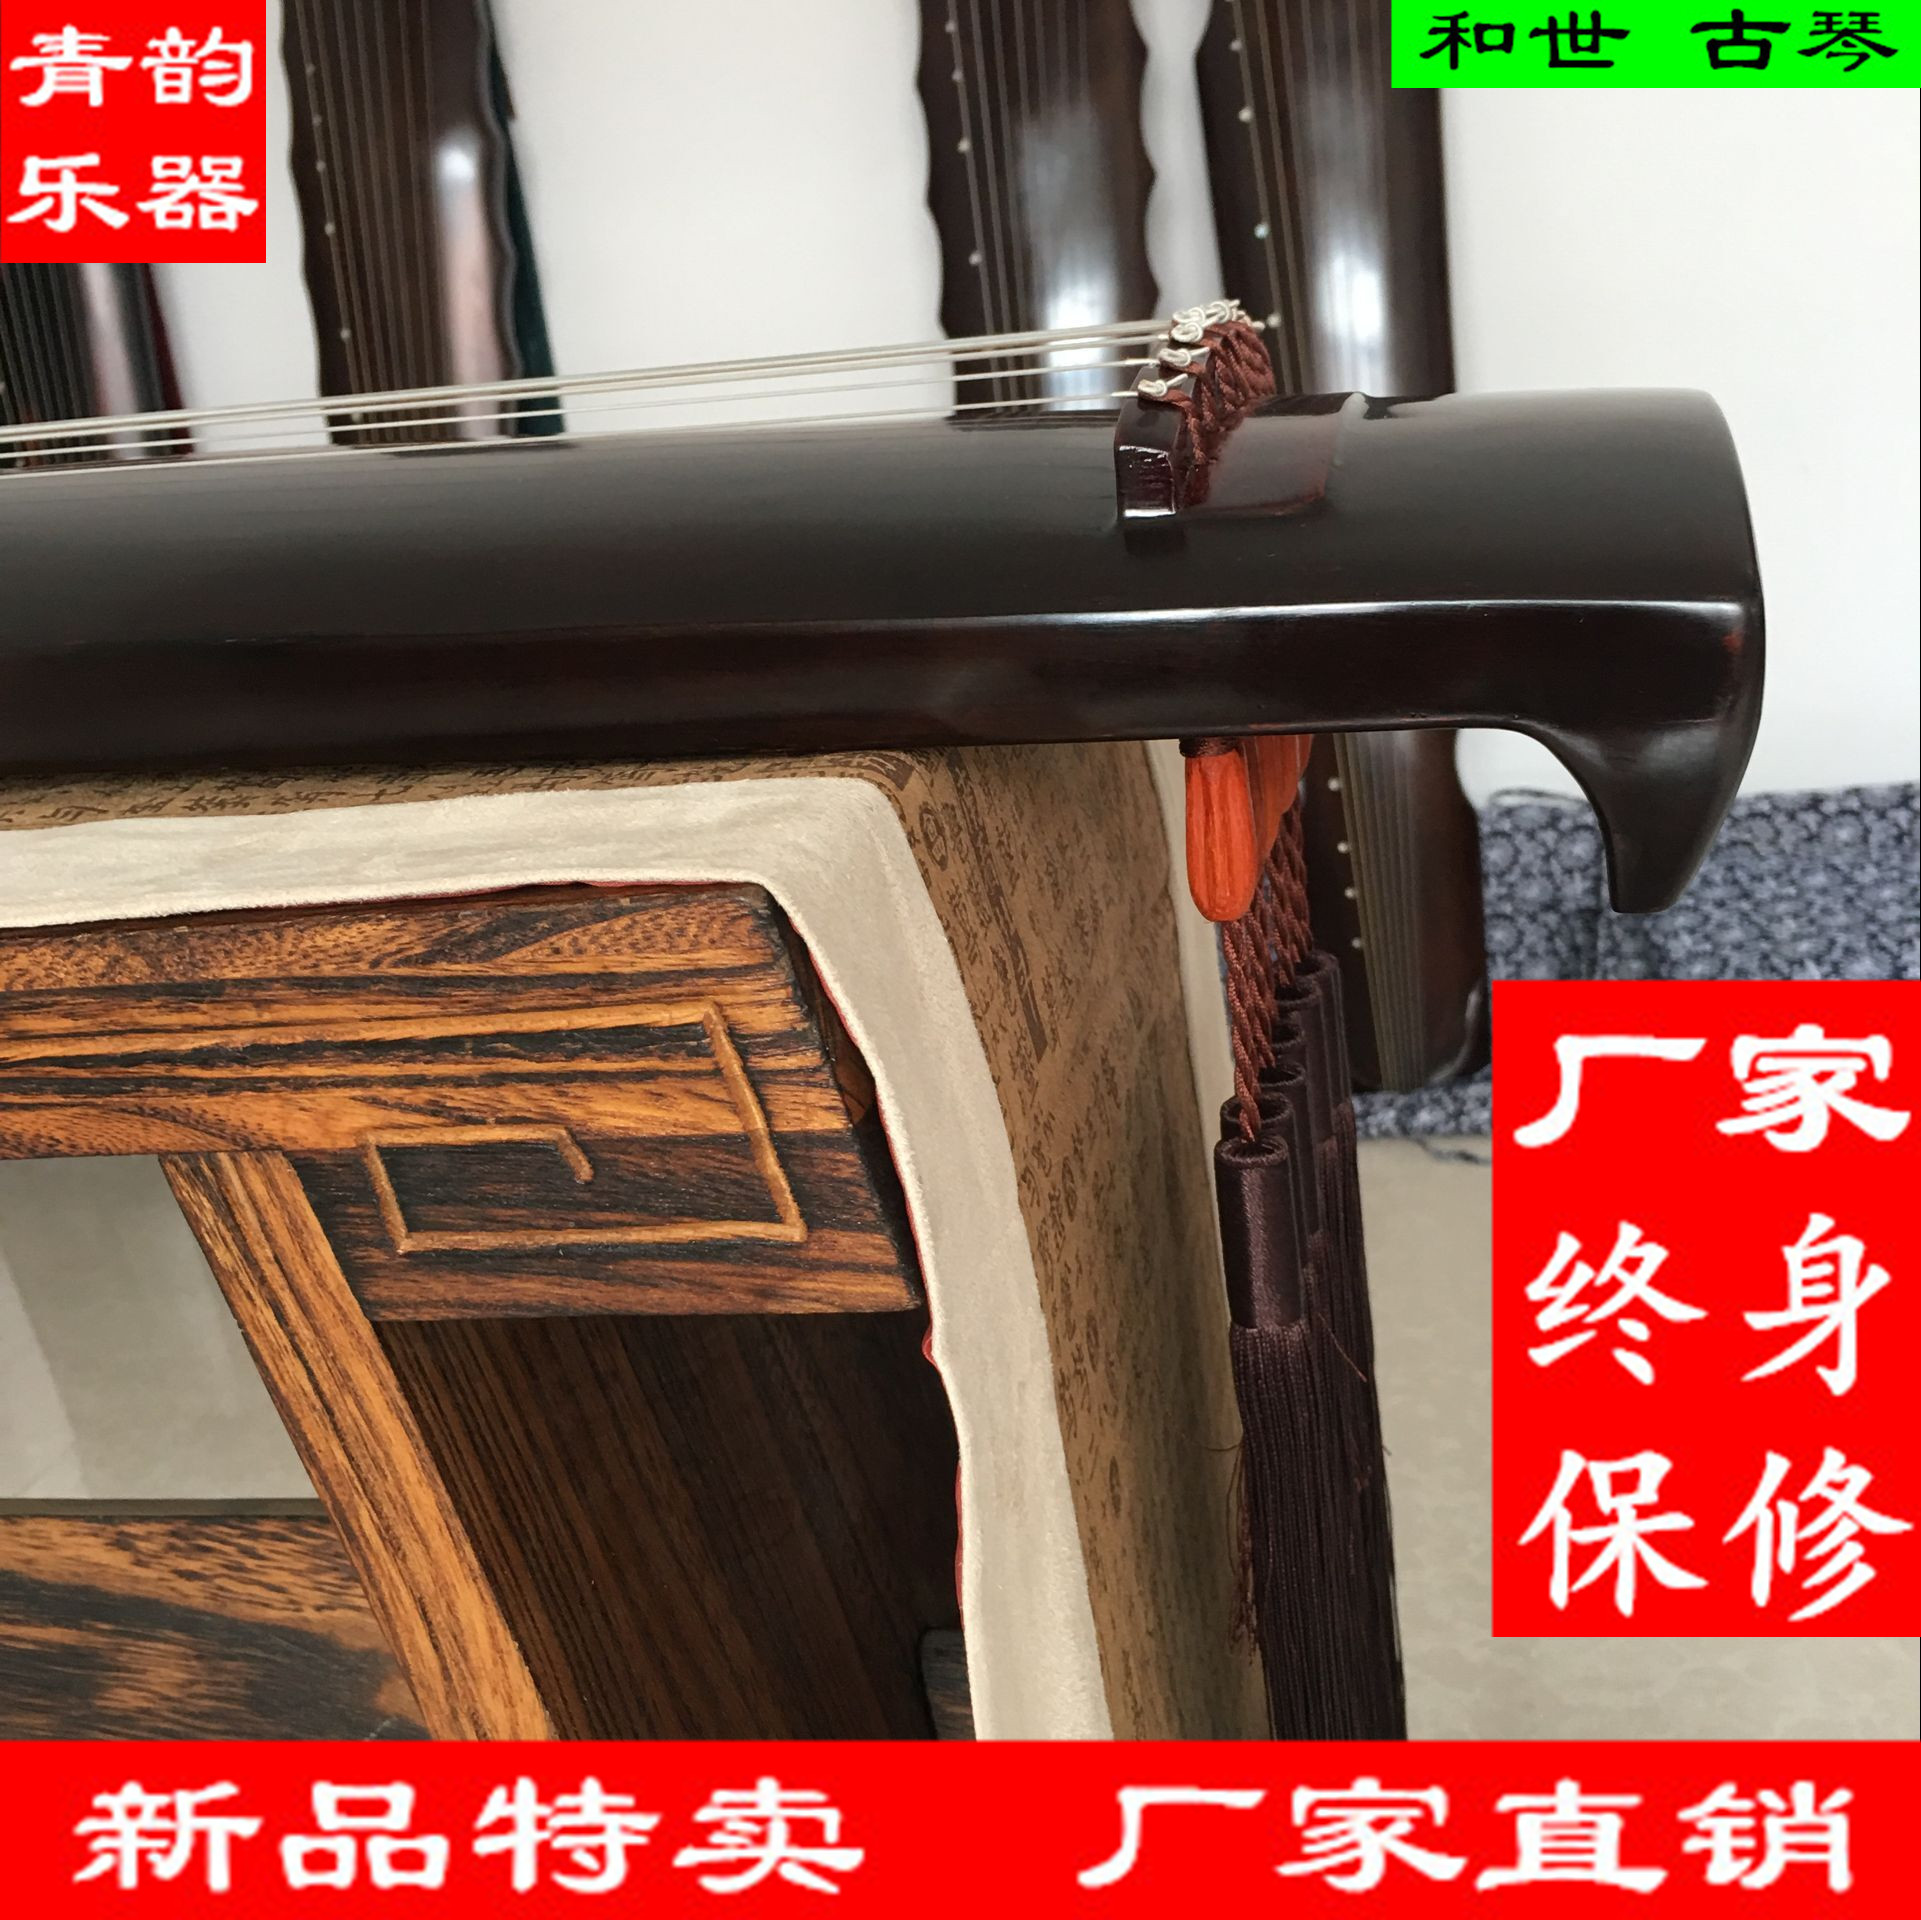 And the world is the Qin Old Tong Wood Beginners practice playing guqin send a full set of accessories package mail